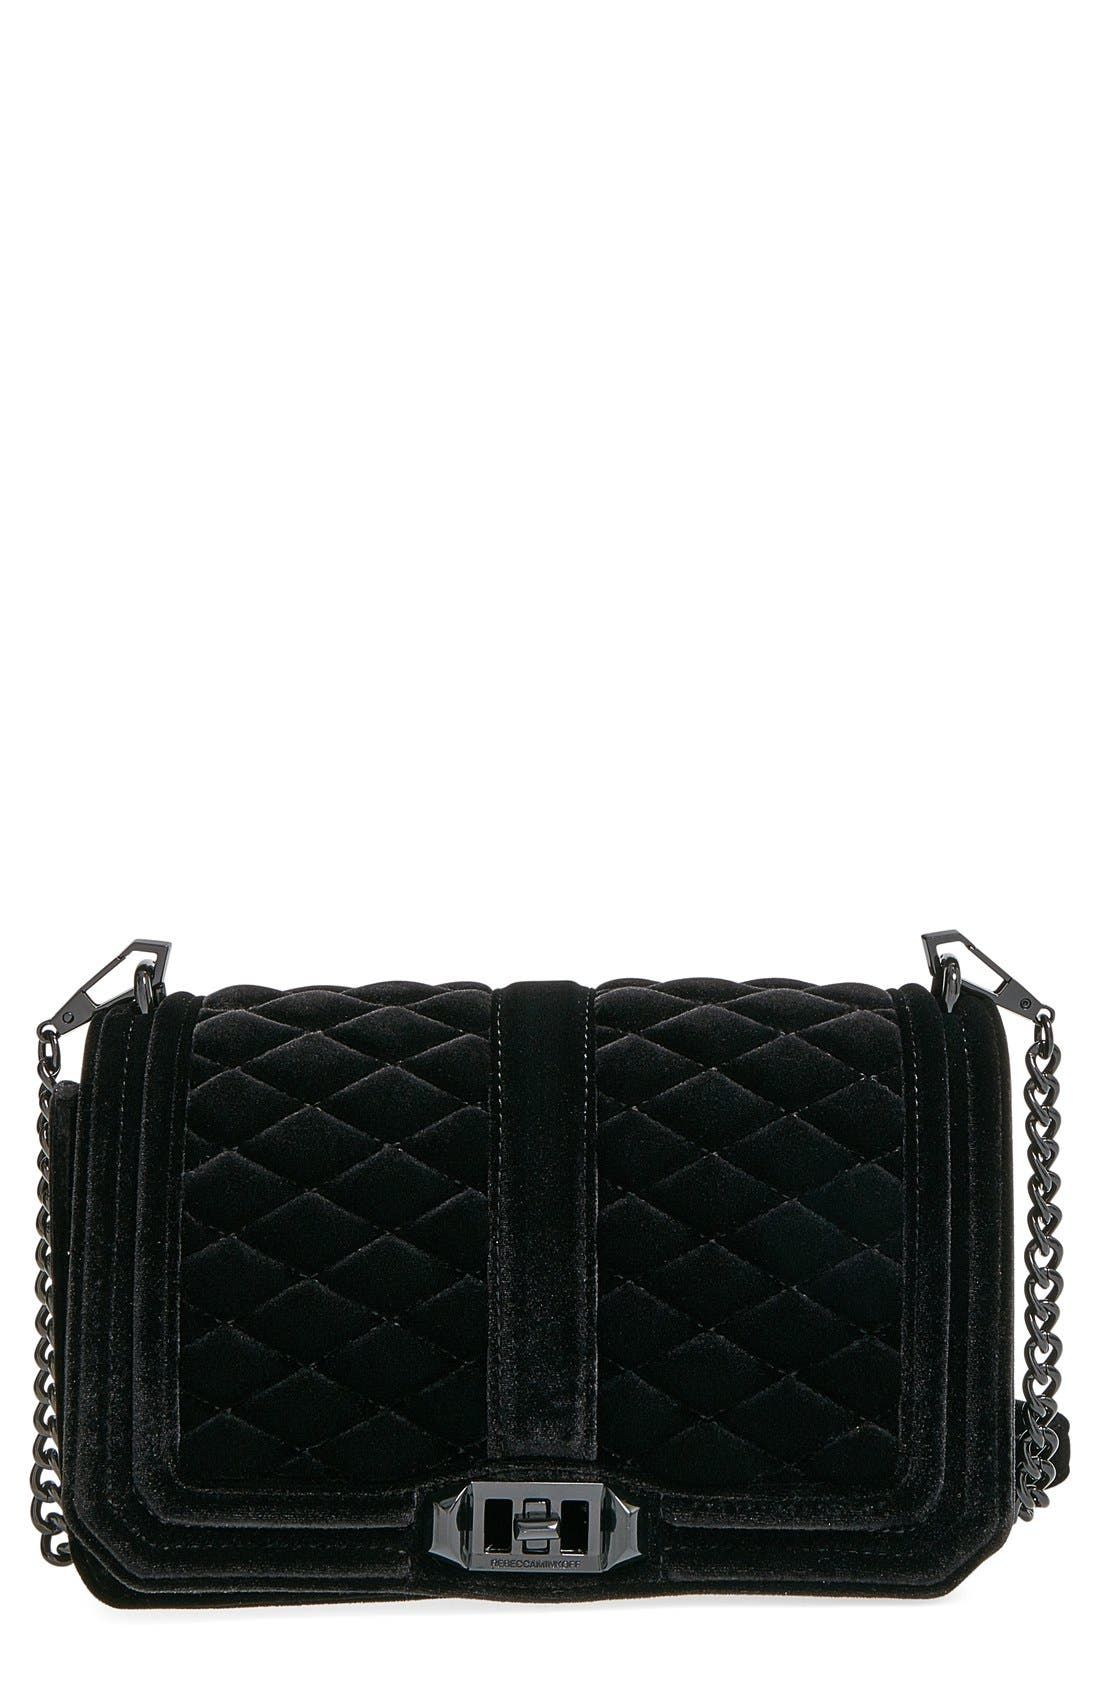 Rebecca Minkoff 'Velvet Love' Crossbody Bag